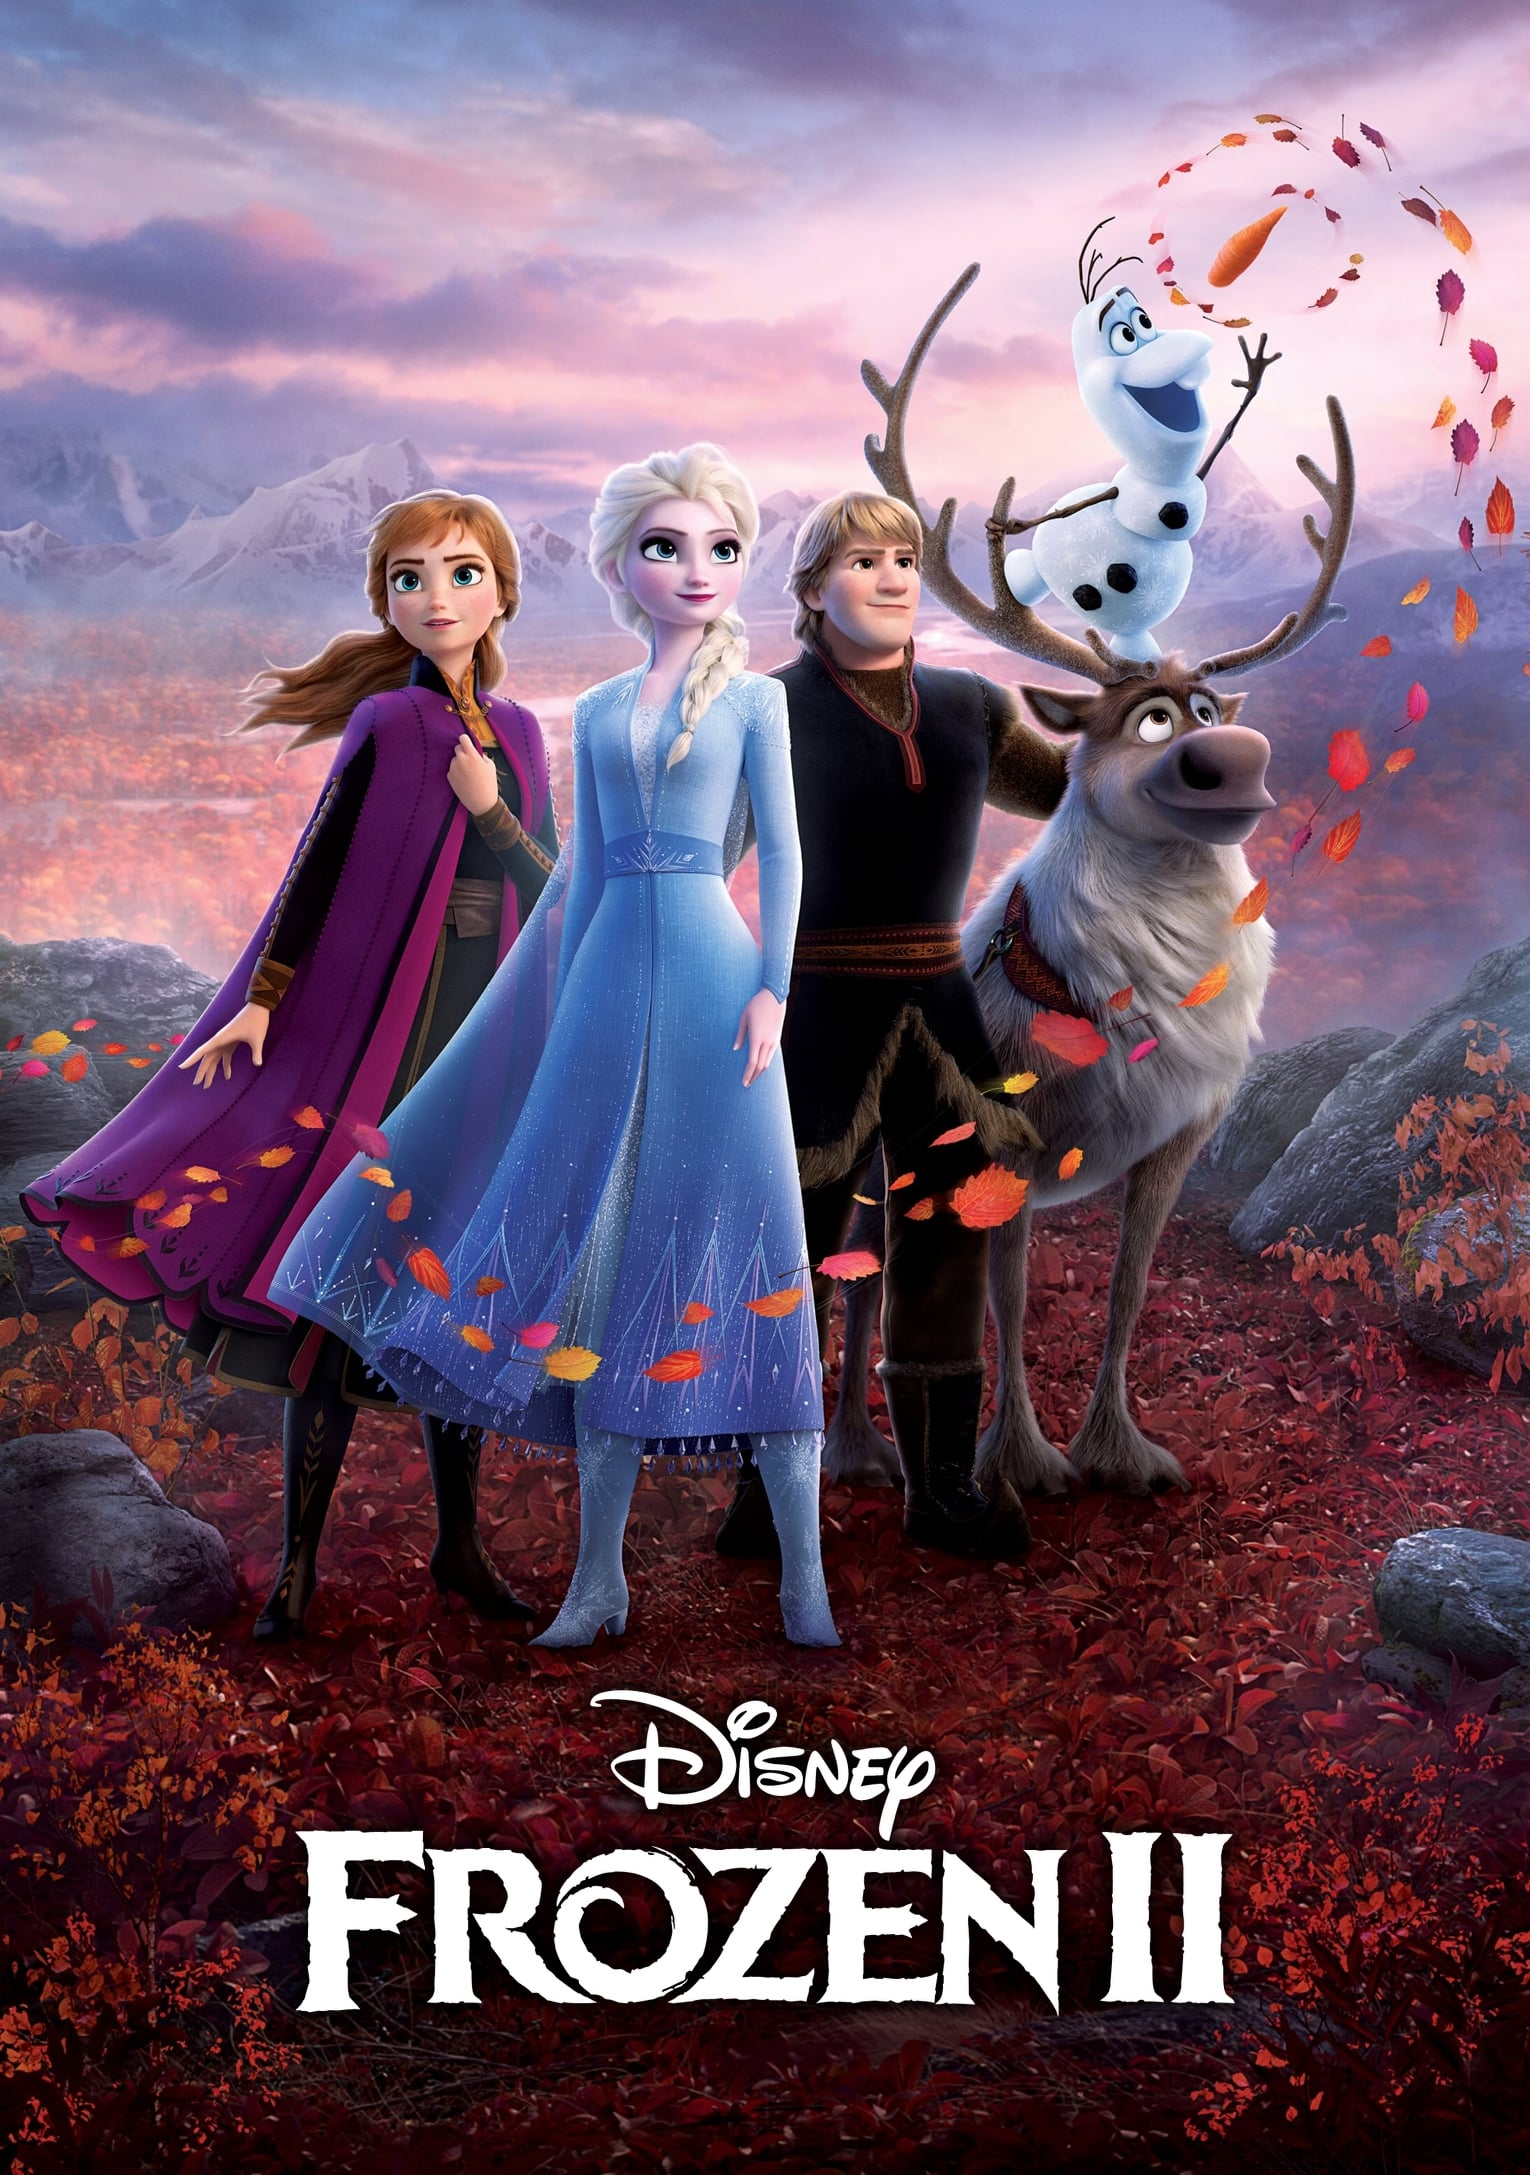 Frozen 2 (2019) | 1080p BluRay 12.5 GB (EVO) & 5.5 GB (yol0w)  | 1080p [1.5 GB] 720p [673 MB] BRRip | G-Drive